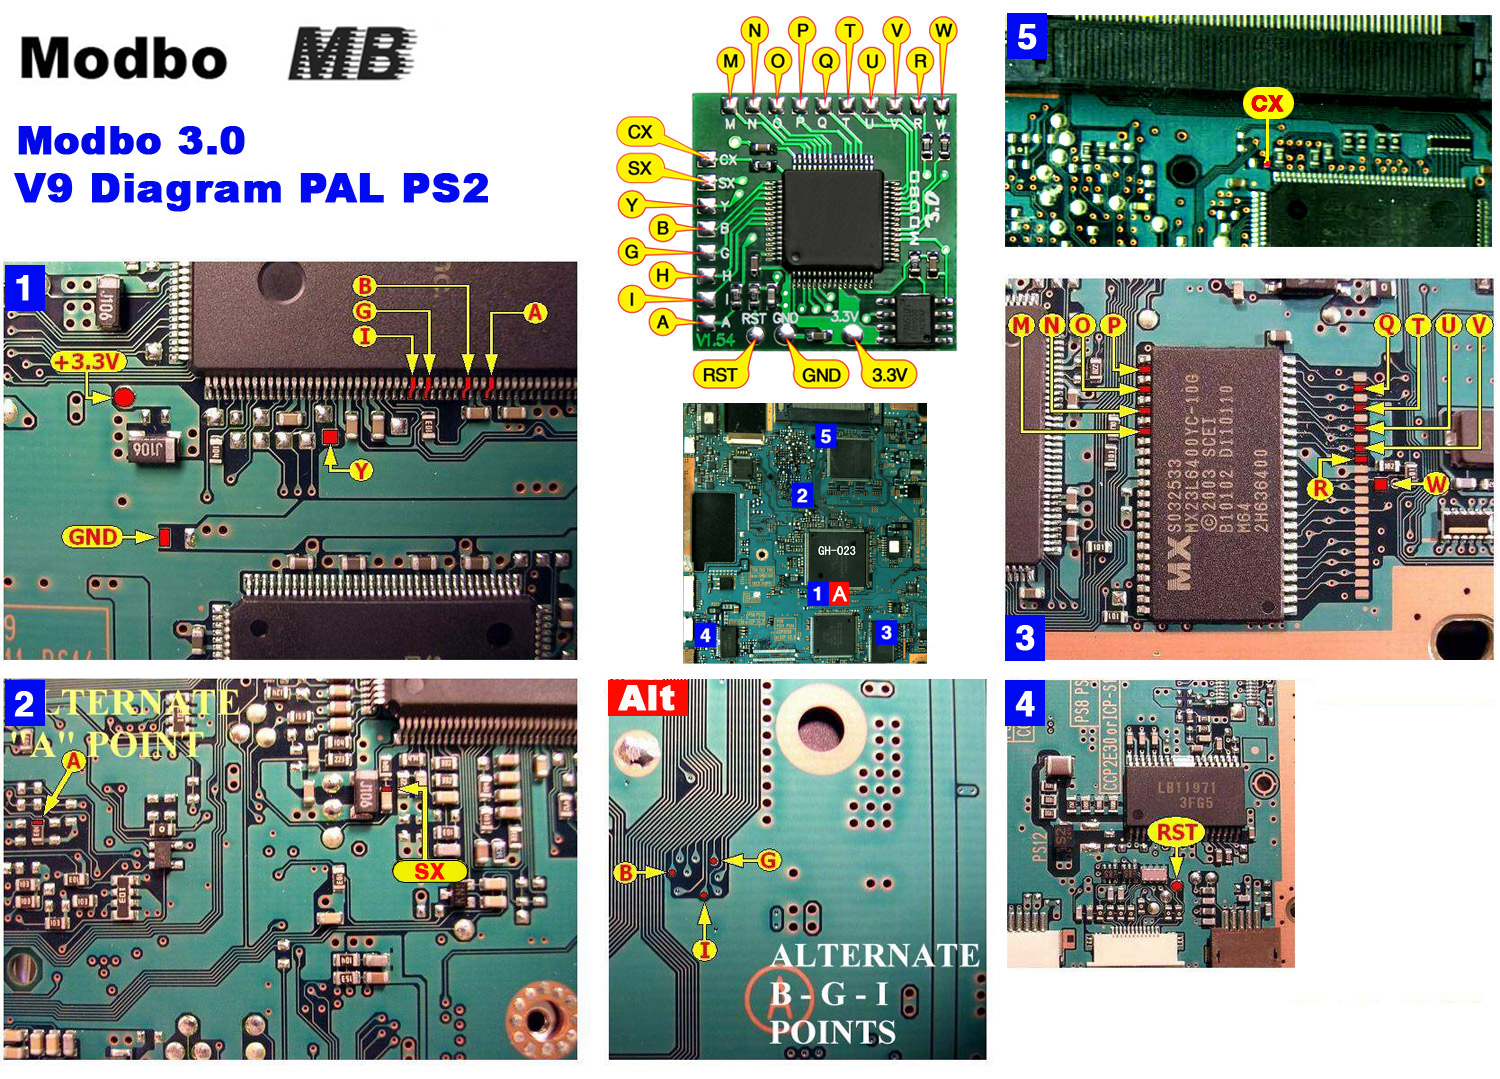 Slim Ps2 Wiring Diagram Manual E Books Schematic Libraryhereu0027s A Link To The Modbo